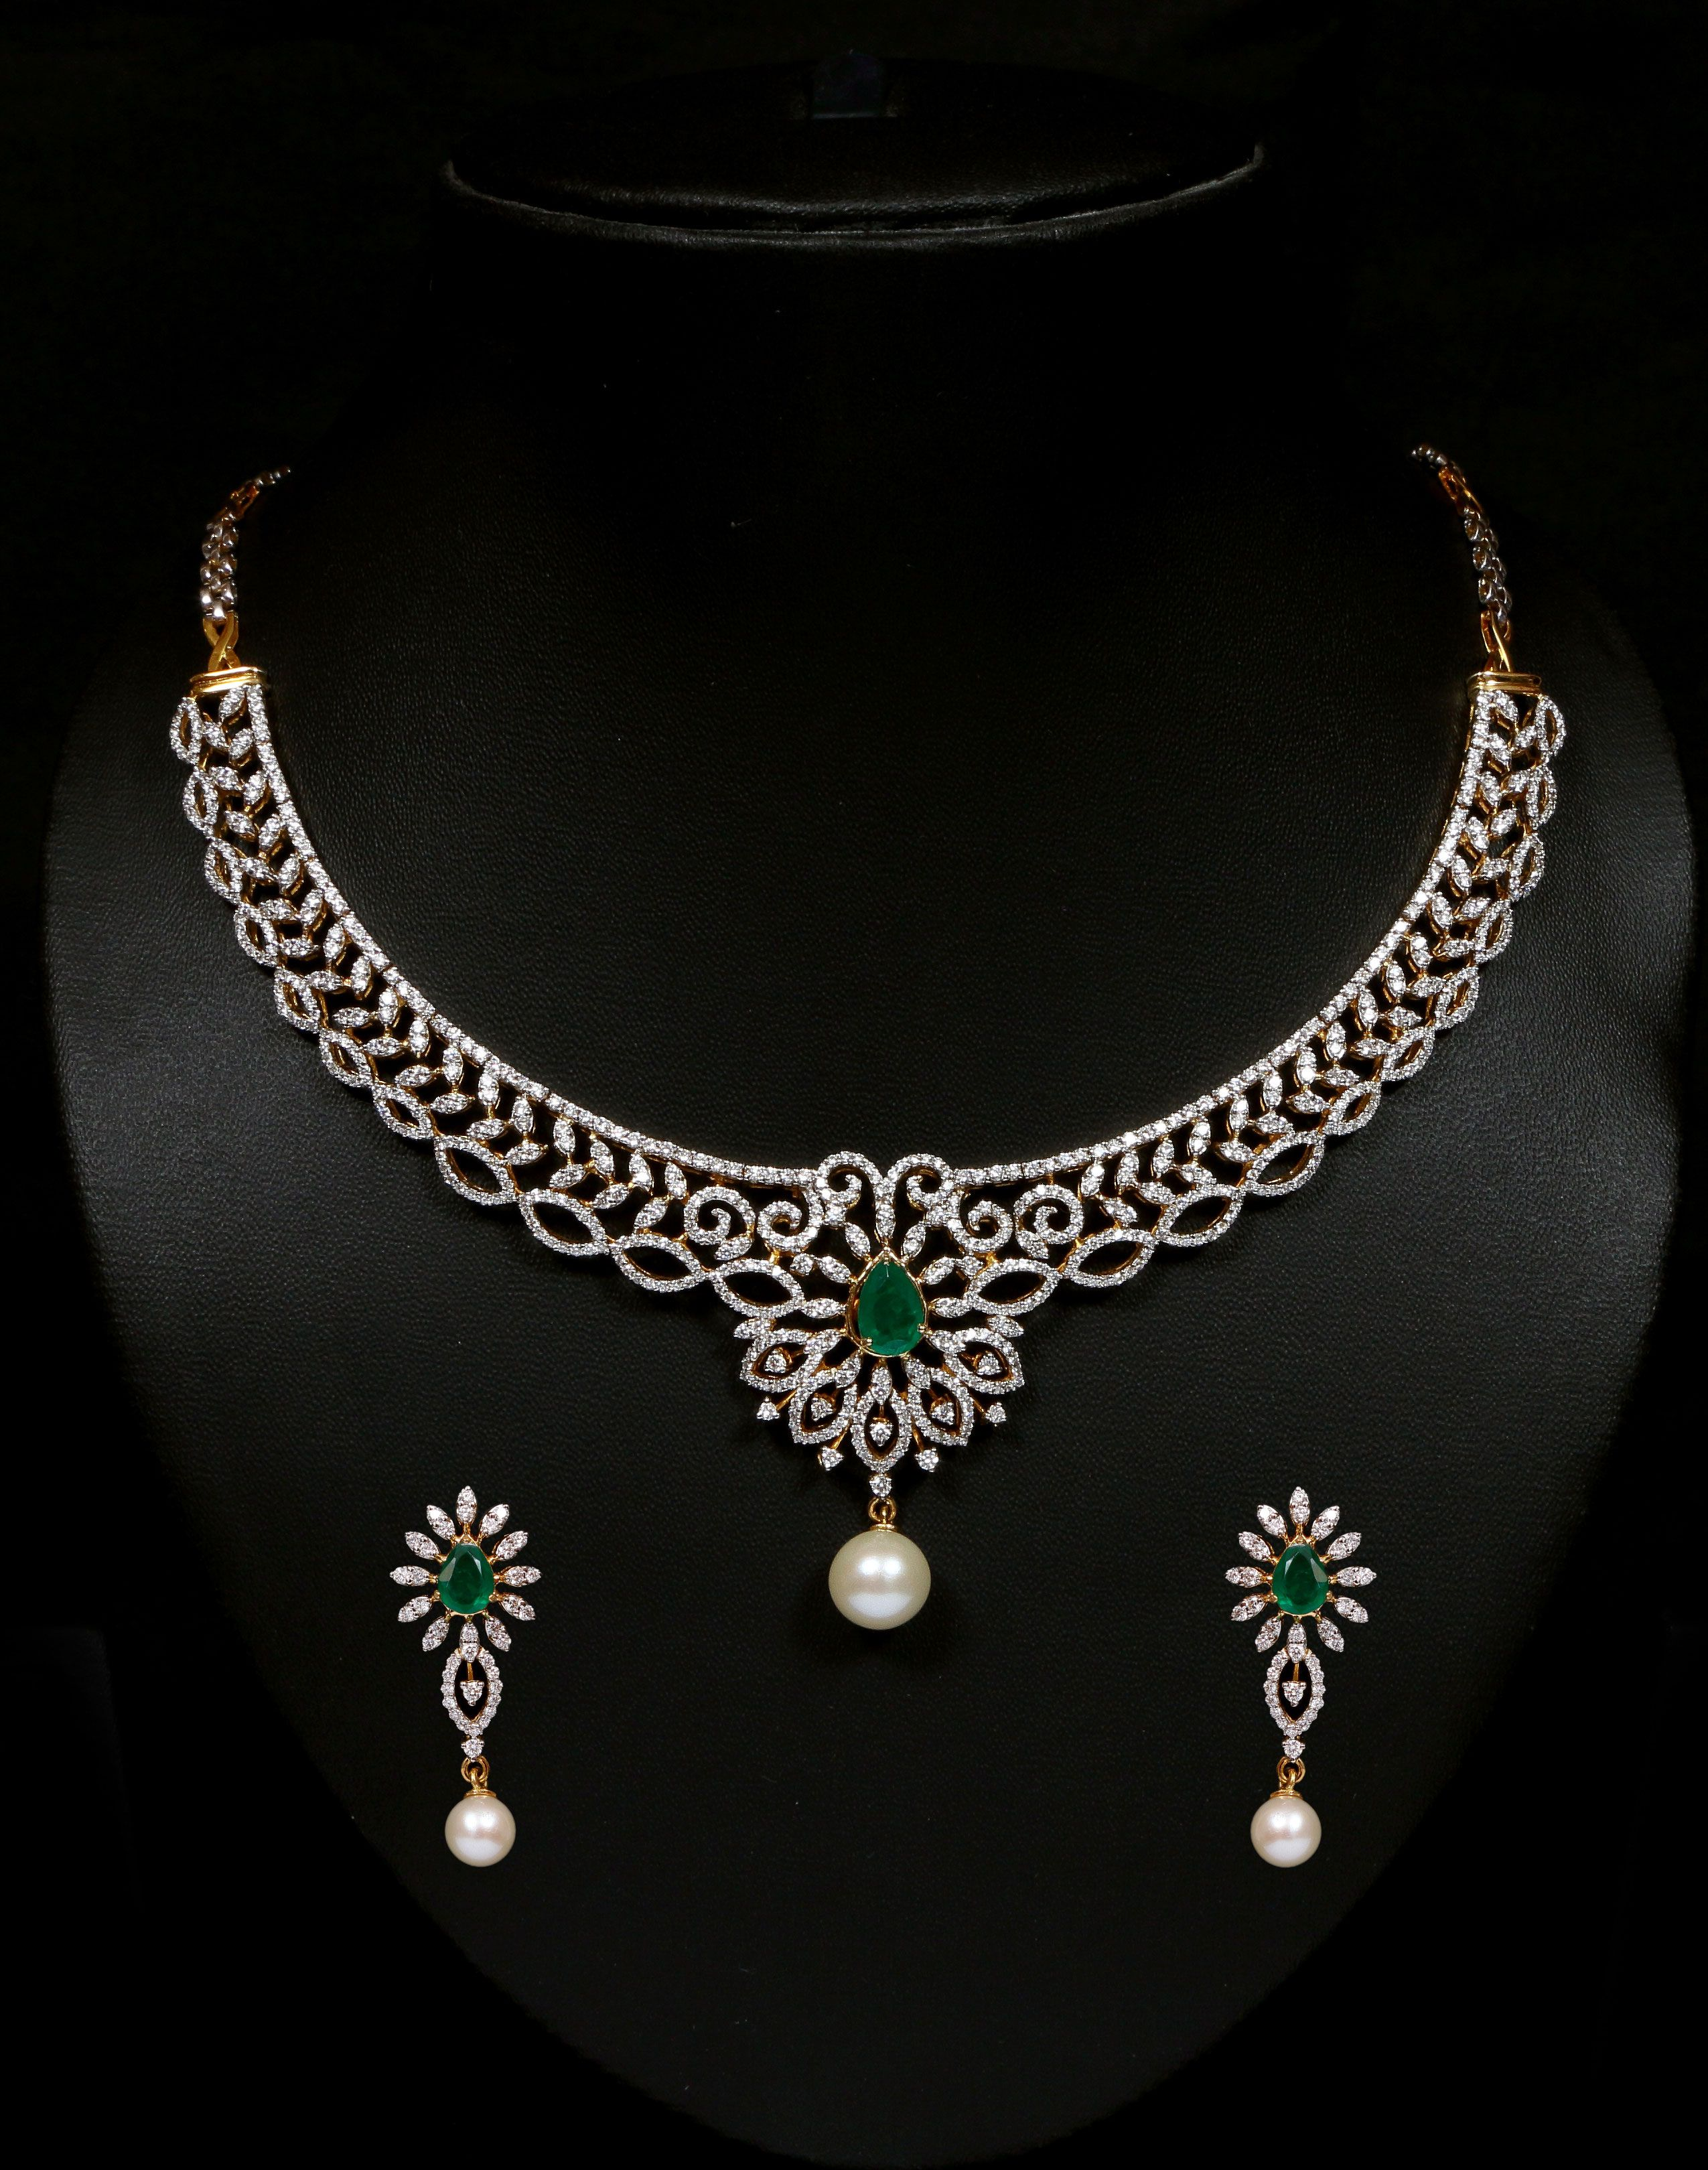 Find This Pin And More On Julie's Big Fat Indian Wedding Diamond And  Emerald Necklace Set